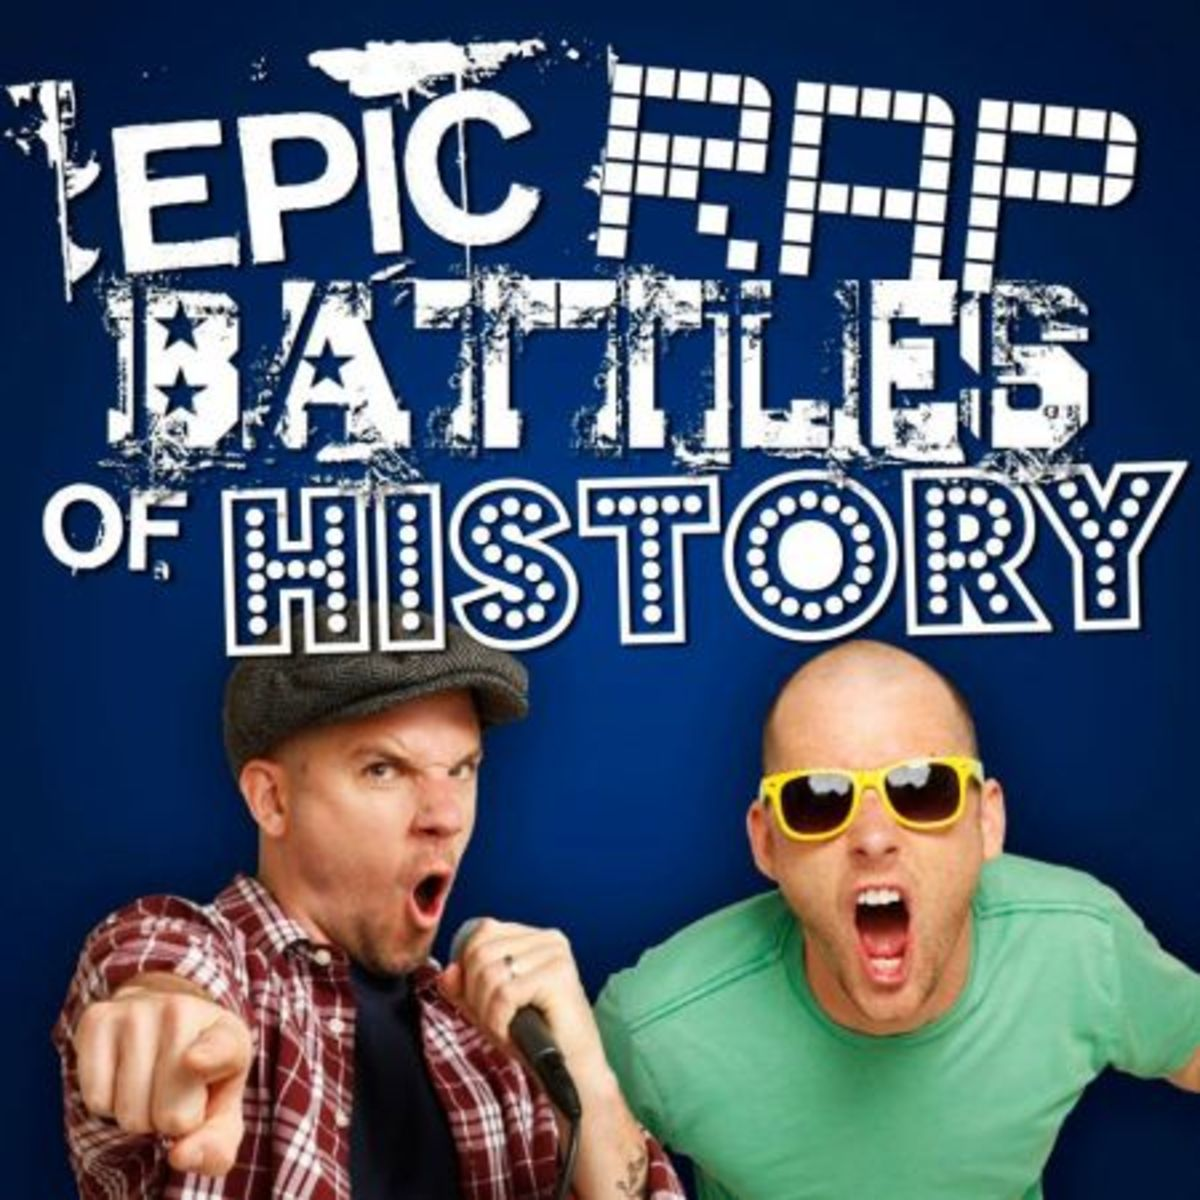 The creators of Epic Rap Battles of History. And the logo.